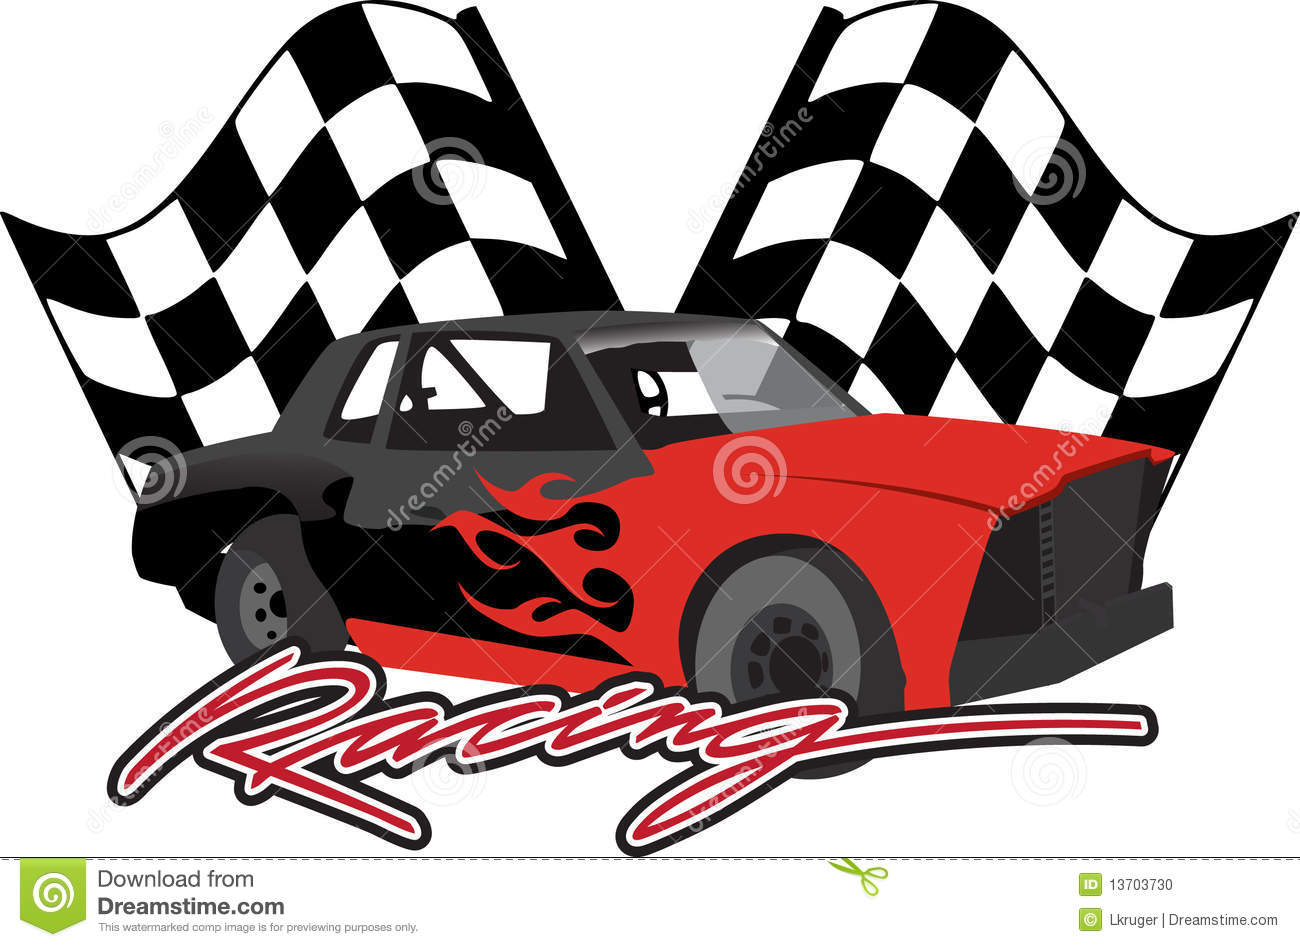 Checkered Flag Cars Nascar Wallpaper Border Race Car With Checkered Flags Stock Photo Image 13703730